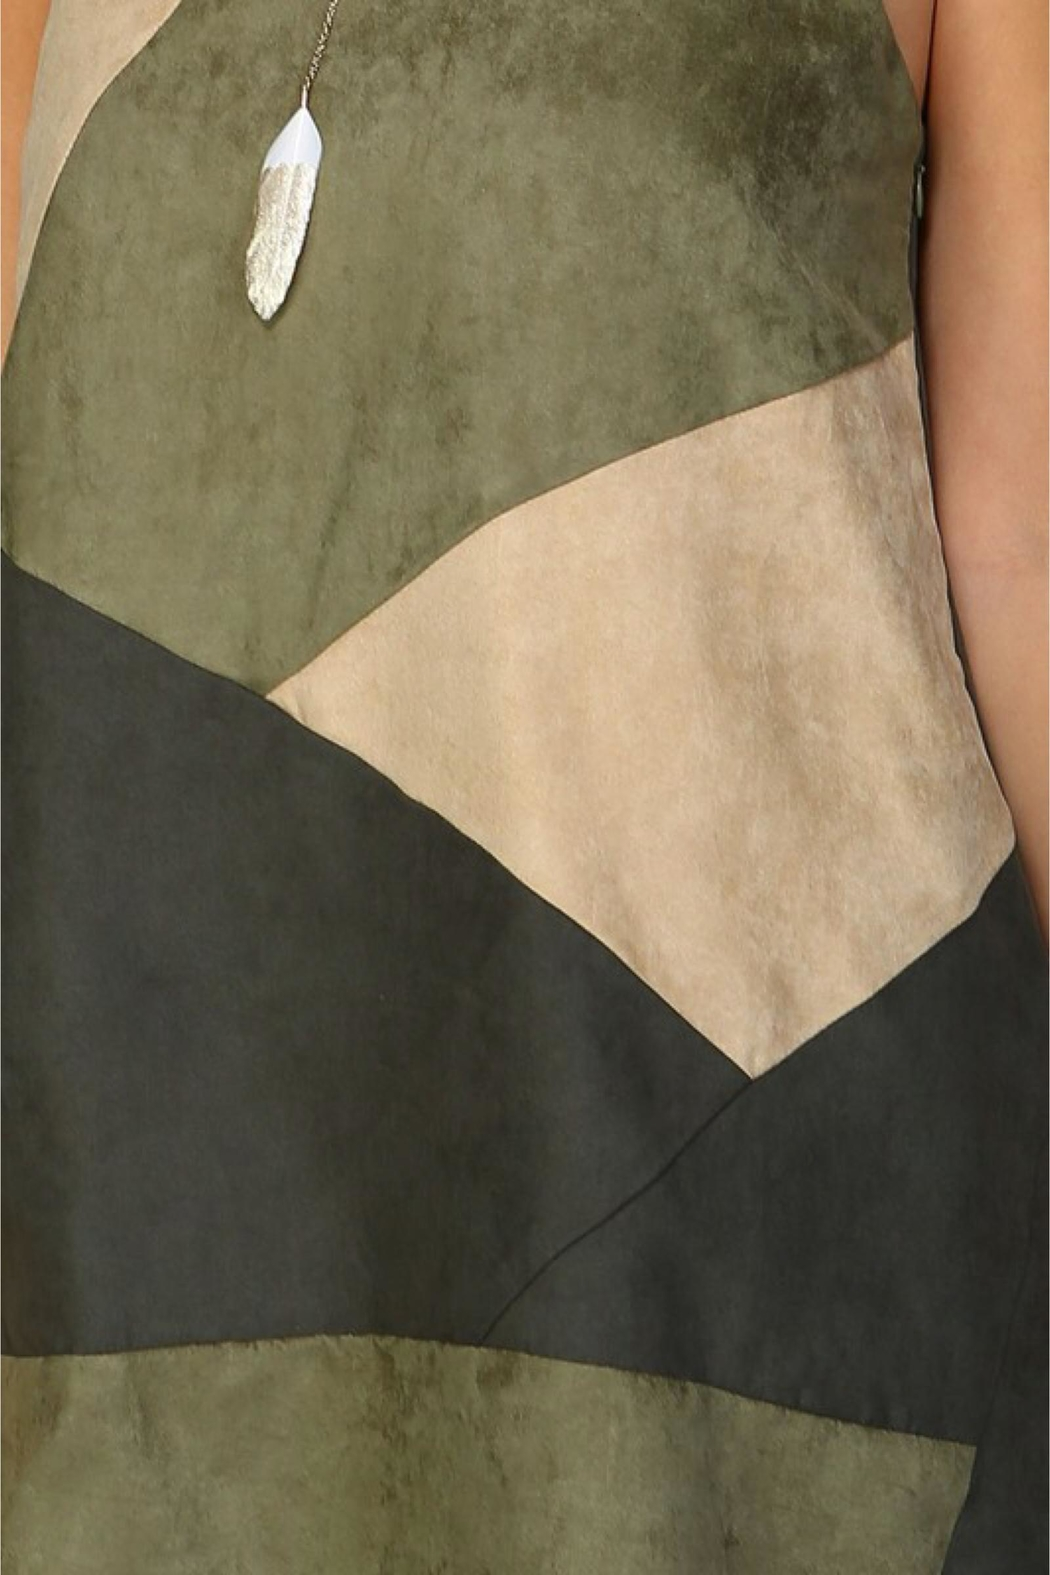 People Outfitter Olive Suede Dress - Side Cropped Image